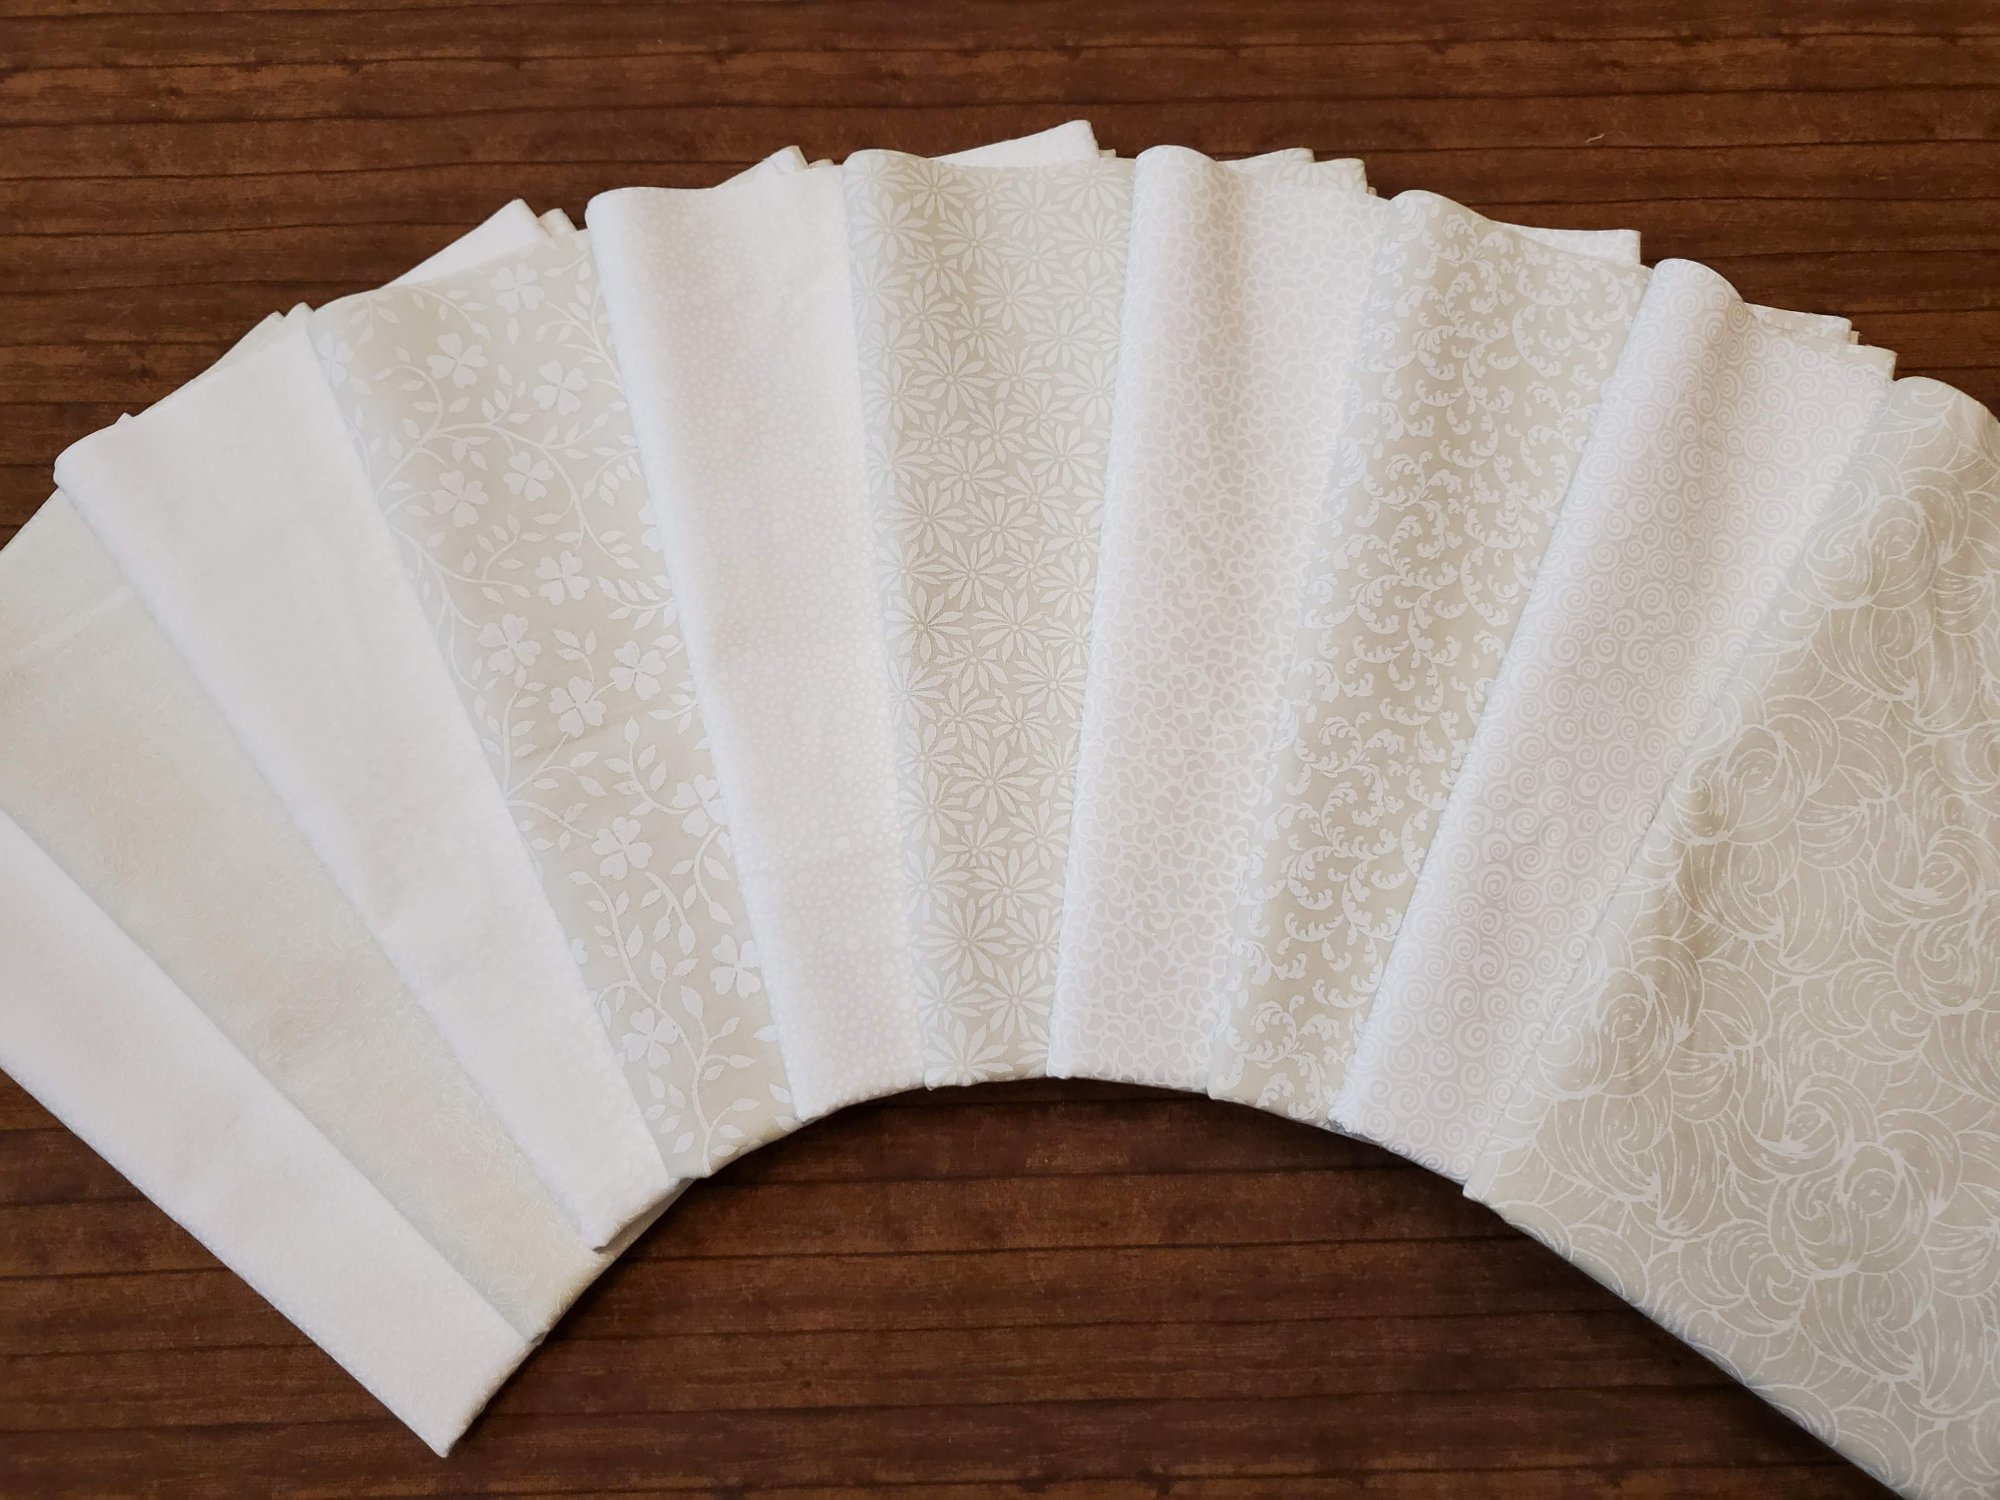 NEW DESIGNS: FULL YARDS: Whites and Off-Whites - 10 Piece FULL Yard Bundle Pack